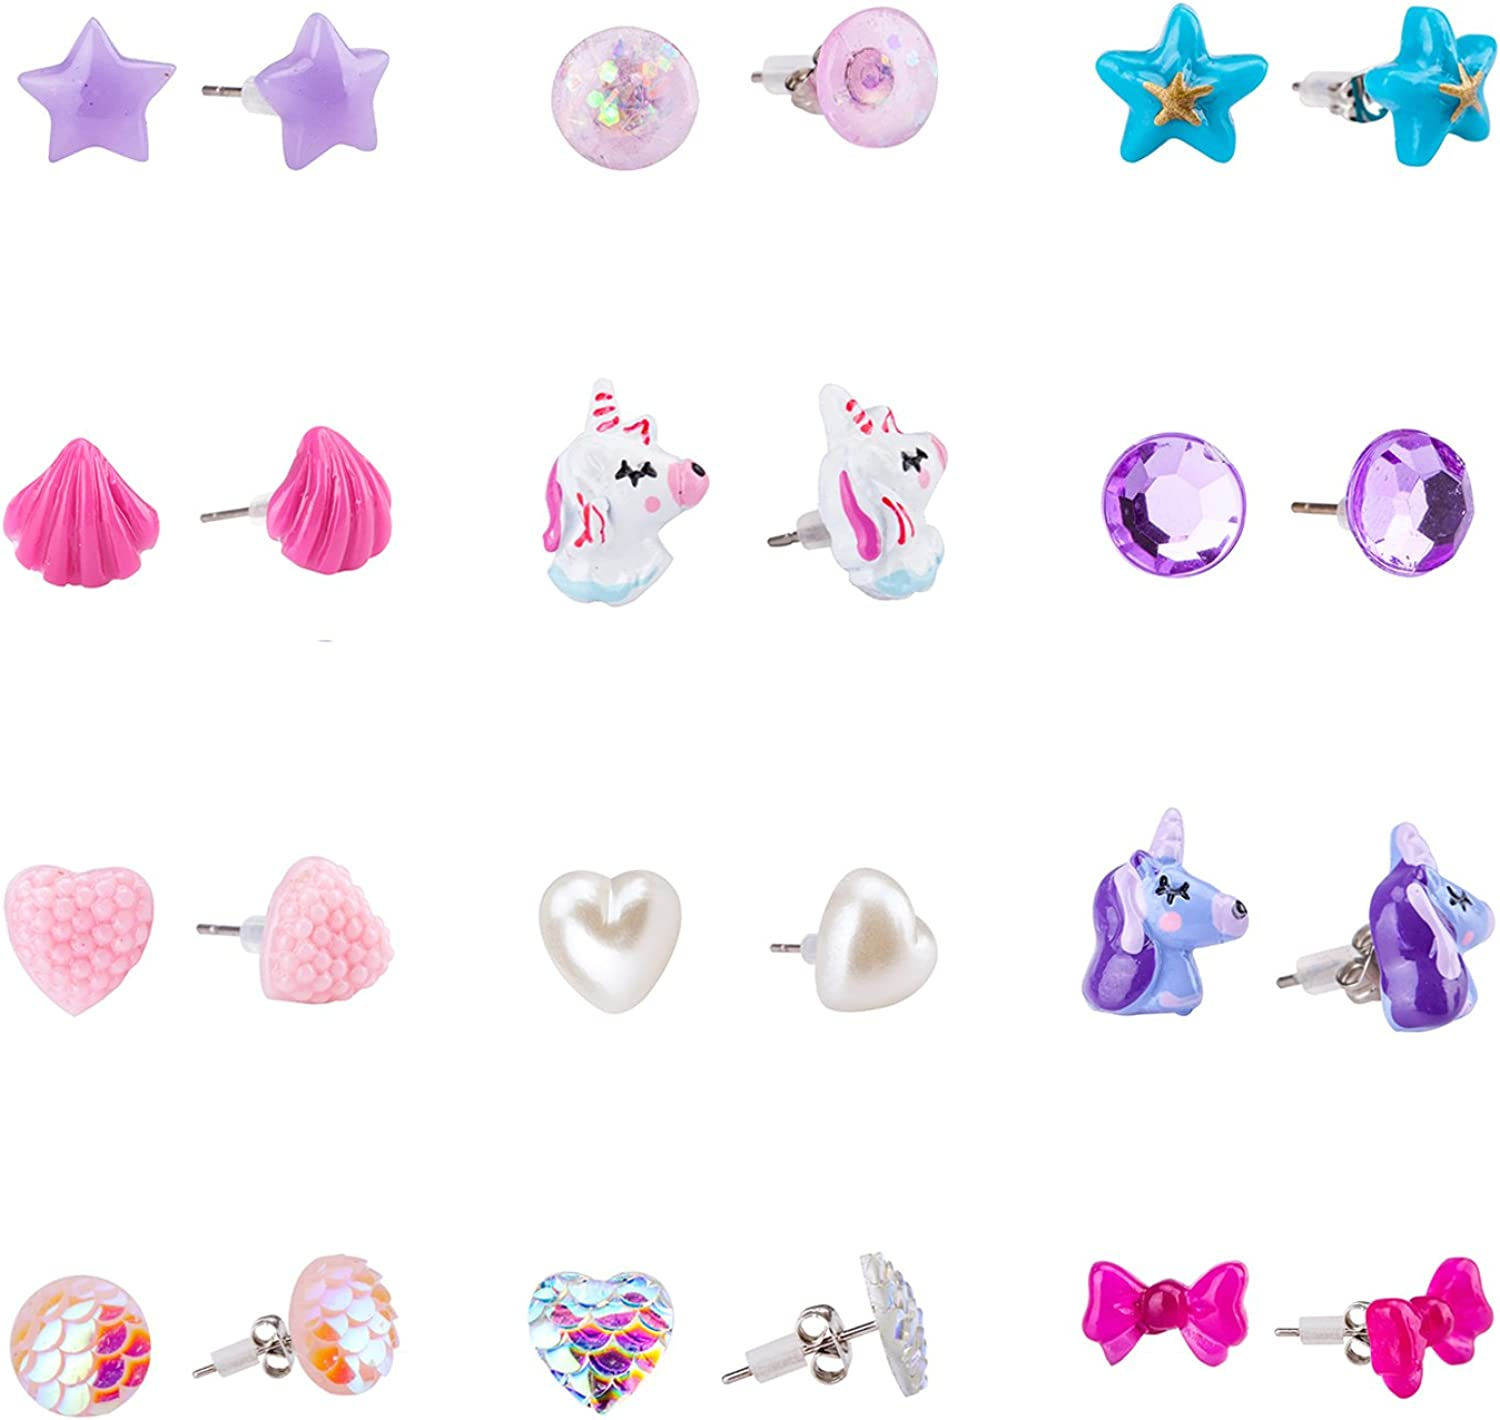 Amazon.com: SkyWiseWin Earrings for Girls, Hypoallergenic Children's Gift  Choice Cute Shapes and Colors Earrings, Set Kids's Stud Earrings: Jewelry